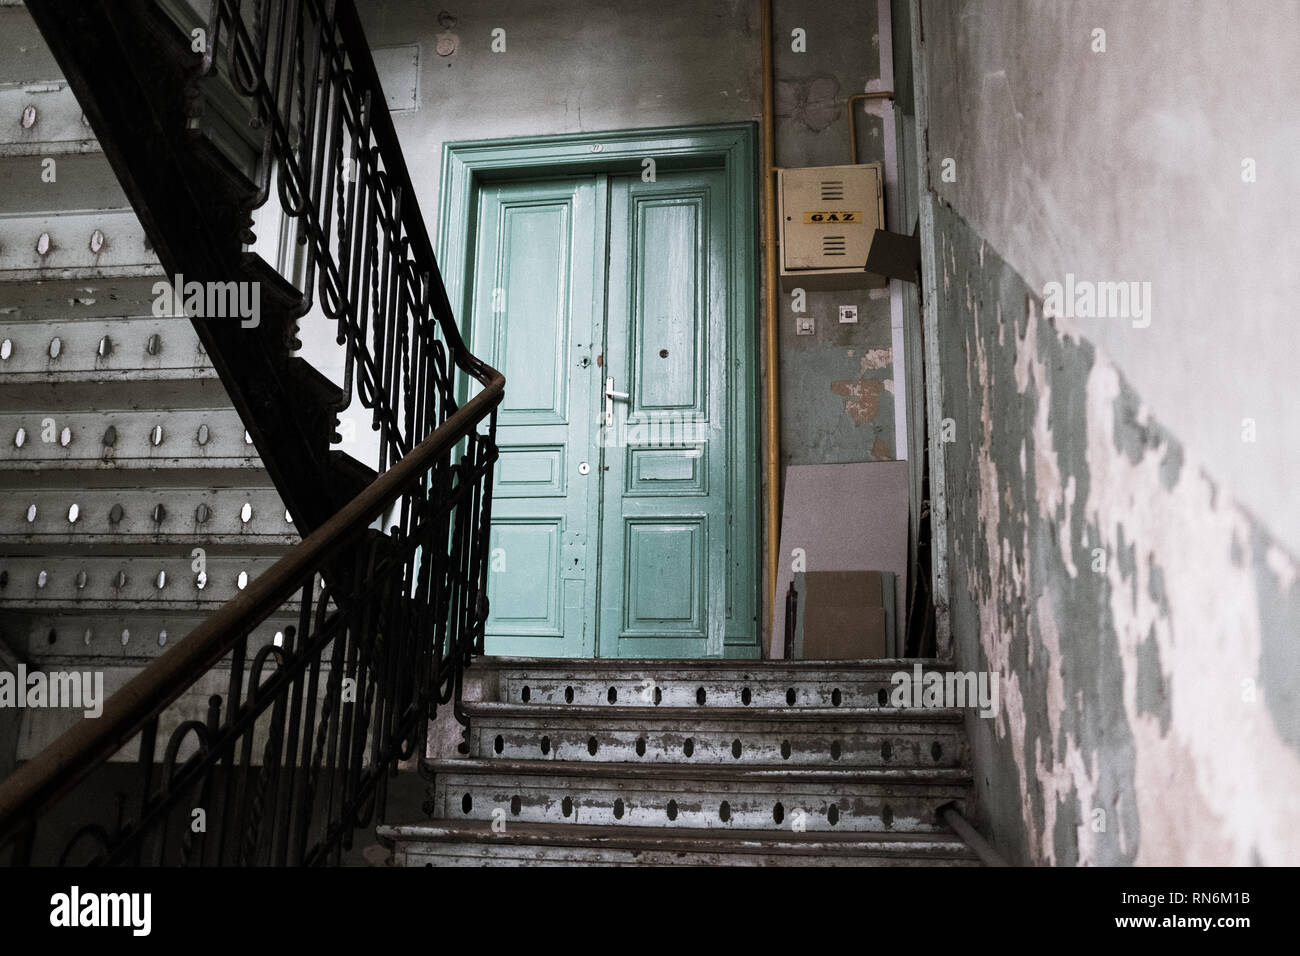 Period staircase for an apartment block leading to a green door - Stock Image